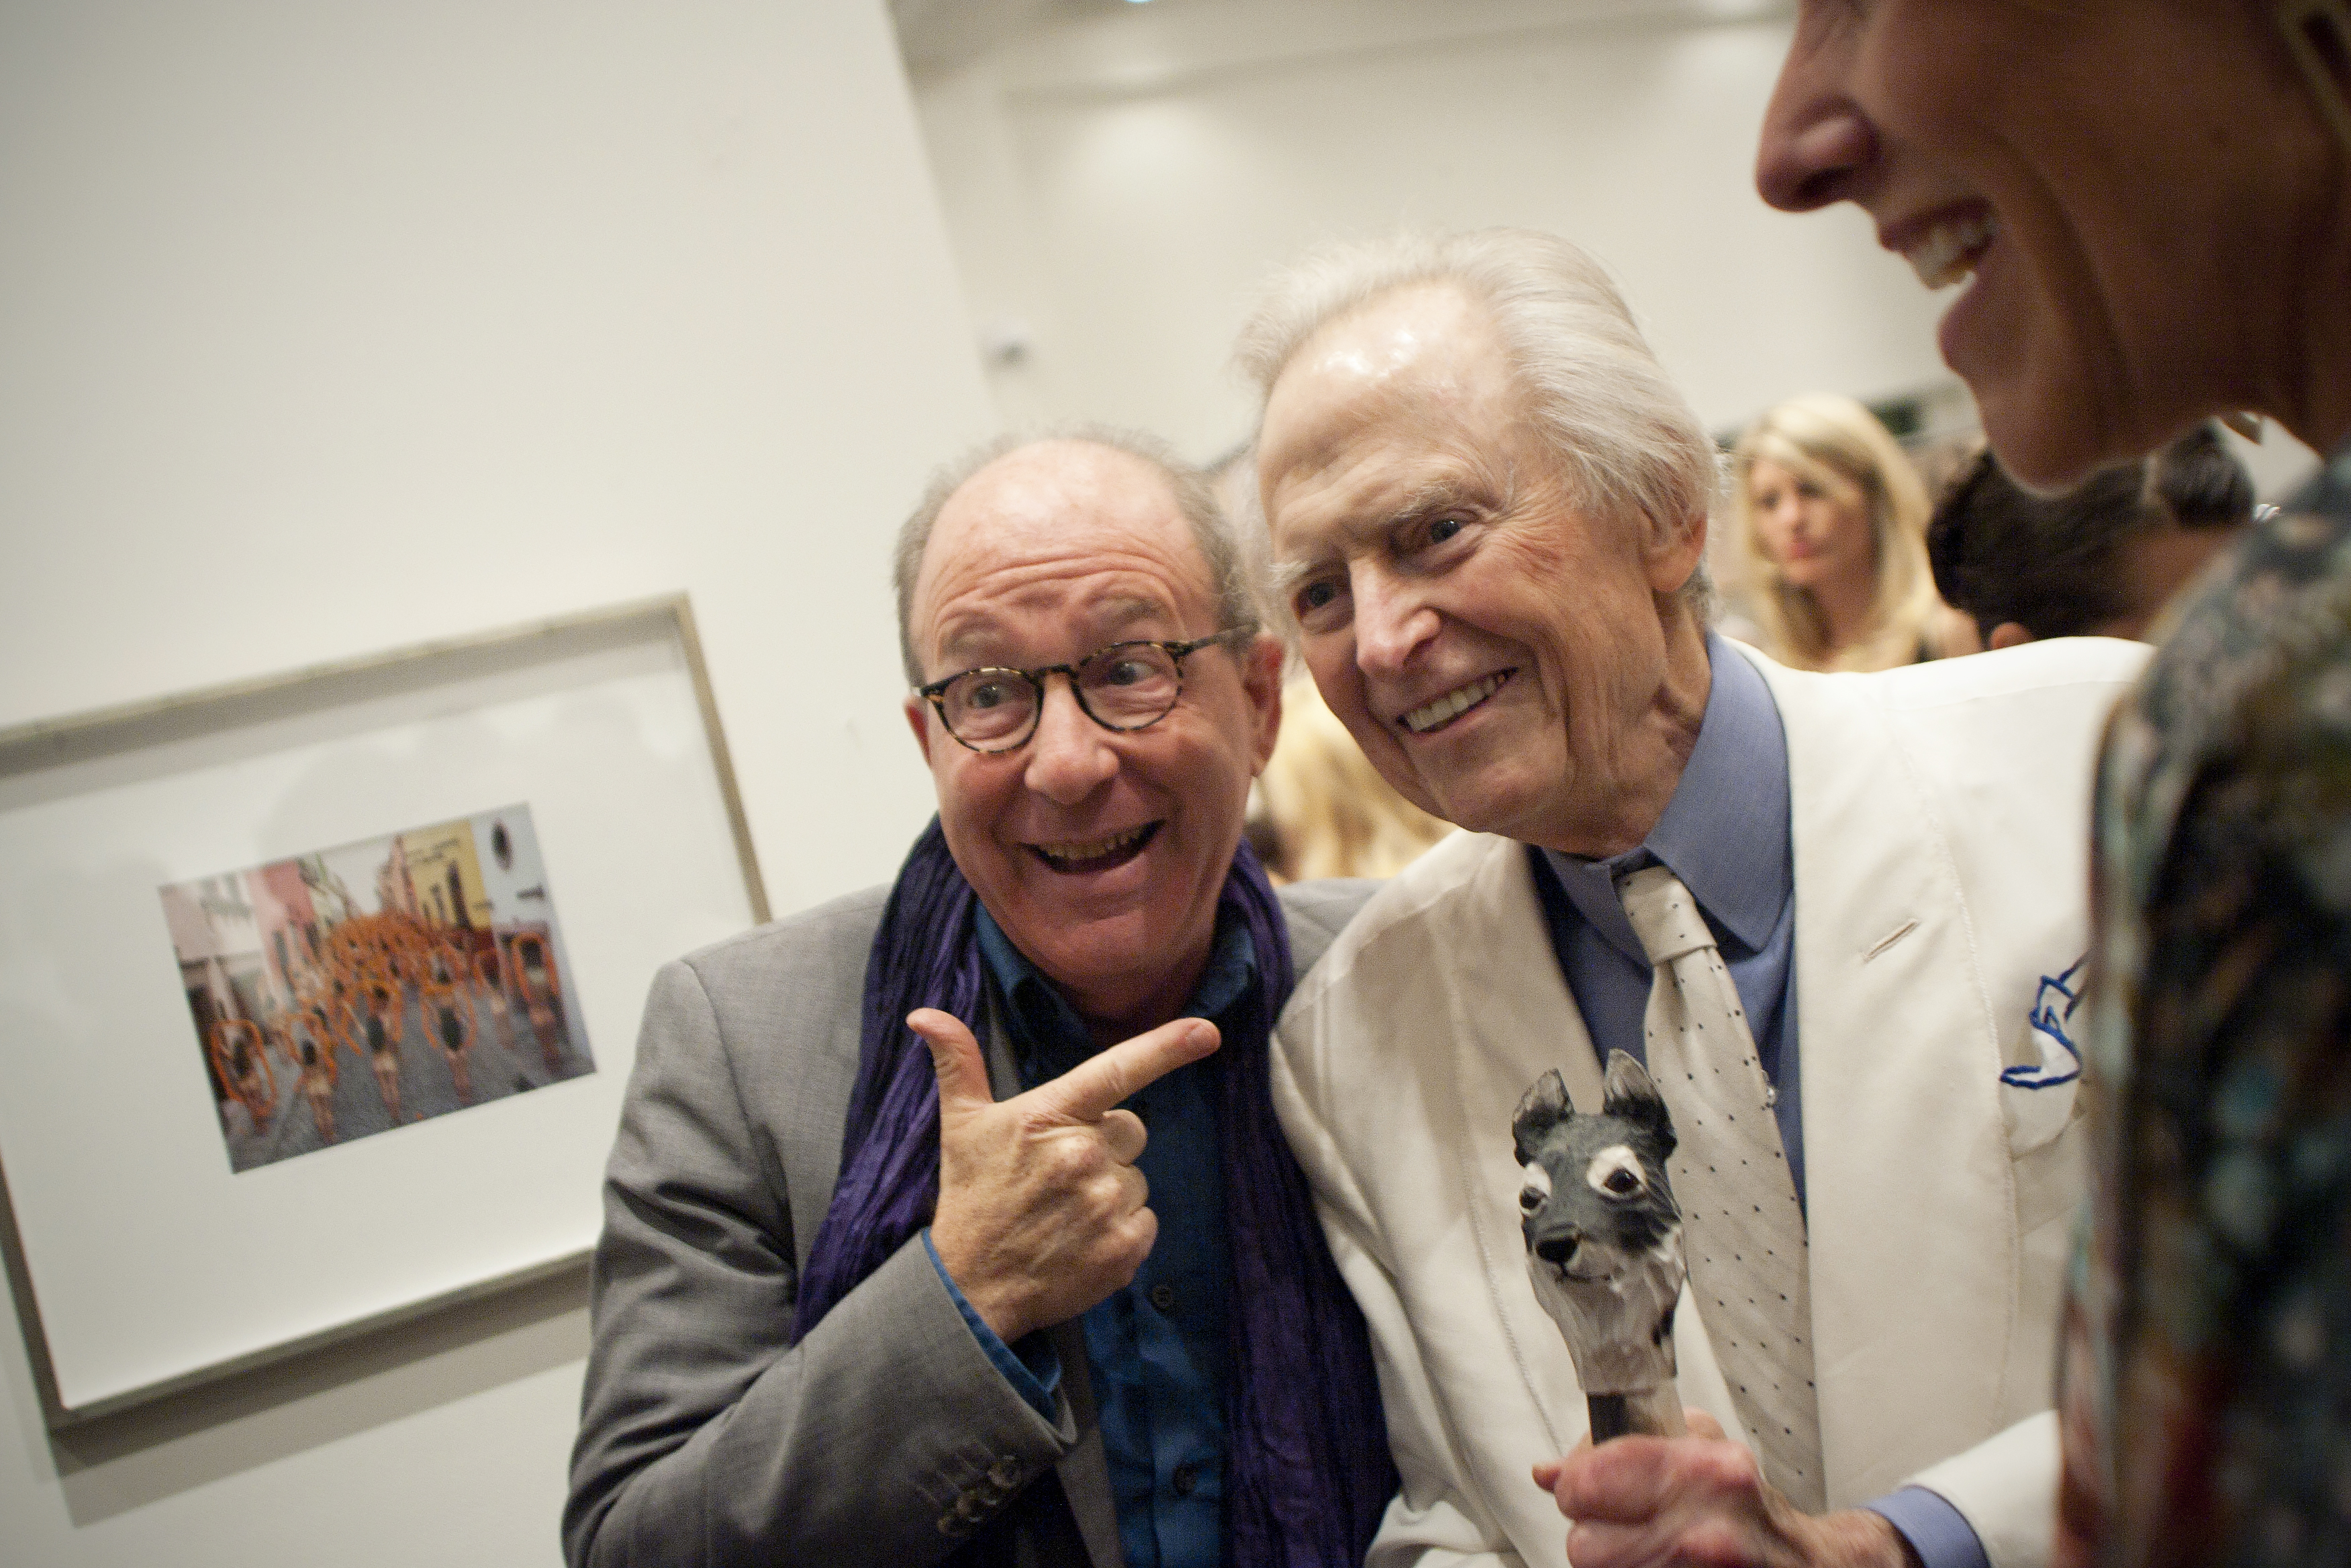 Jerry Saltz and Tom Wolfe